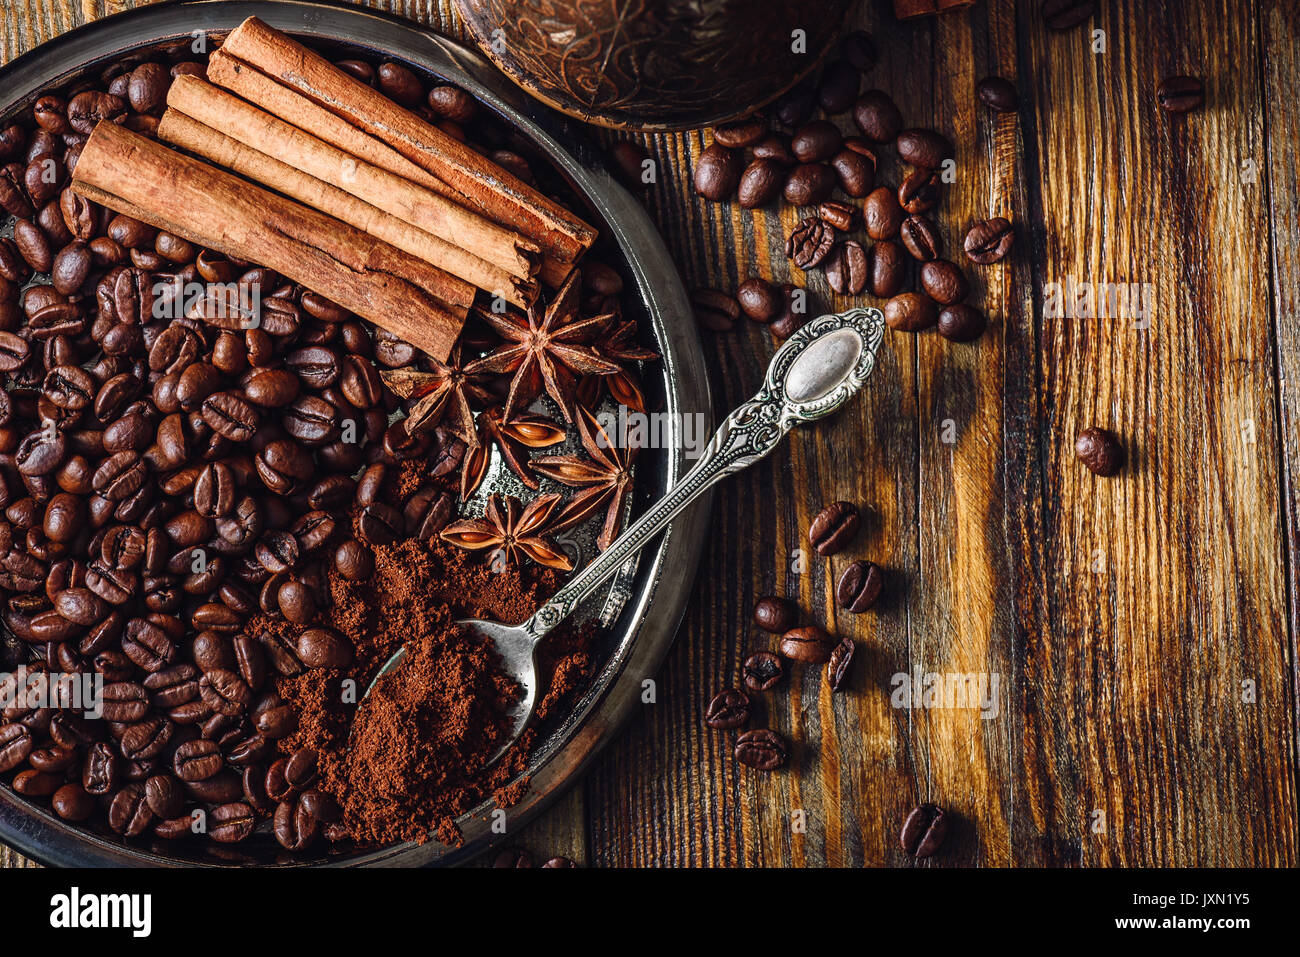 Coffee Beans with Spooonful of Ground Coffee, Cinnamon Sticks and Chinese Star Anise on Metal Plate. Some Beans Scattered on Wooden Table. View from A - Stock Image